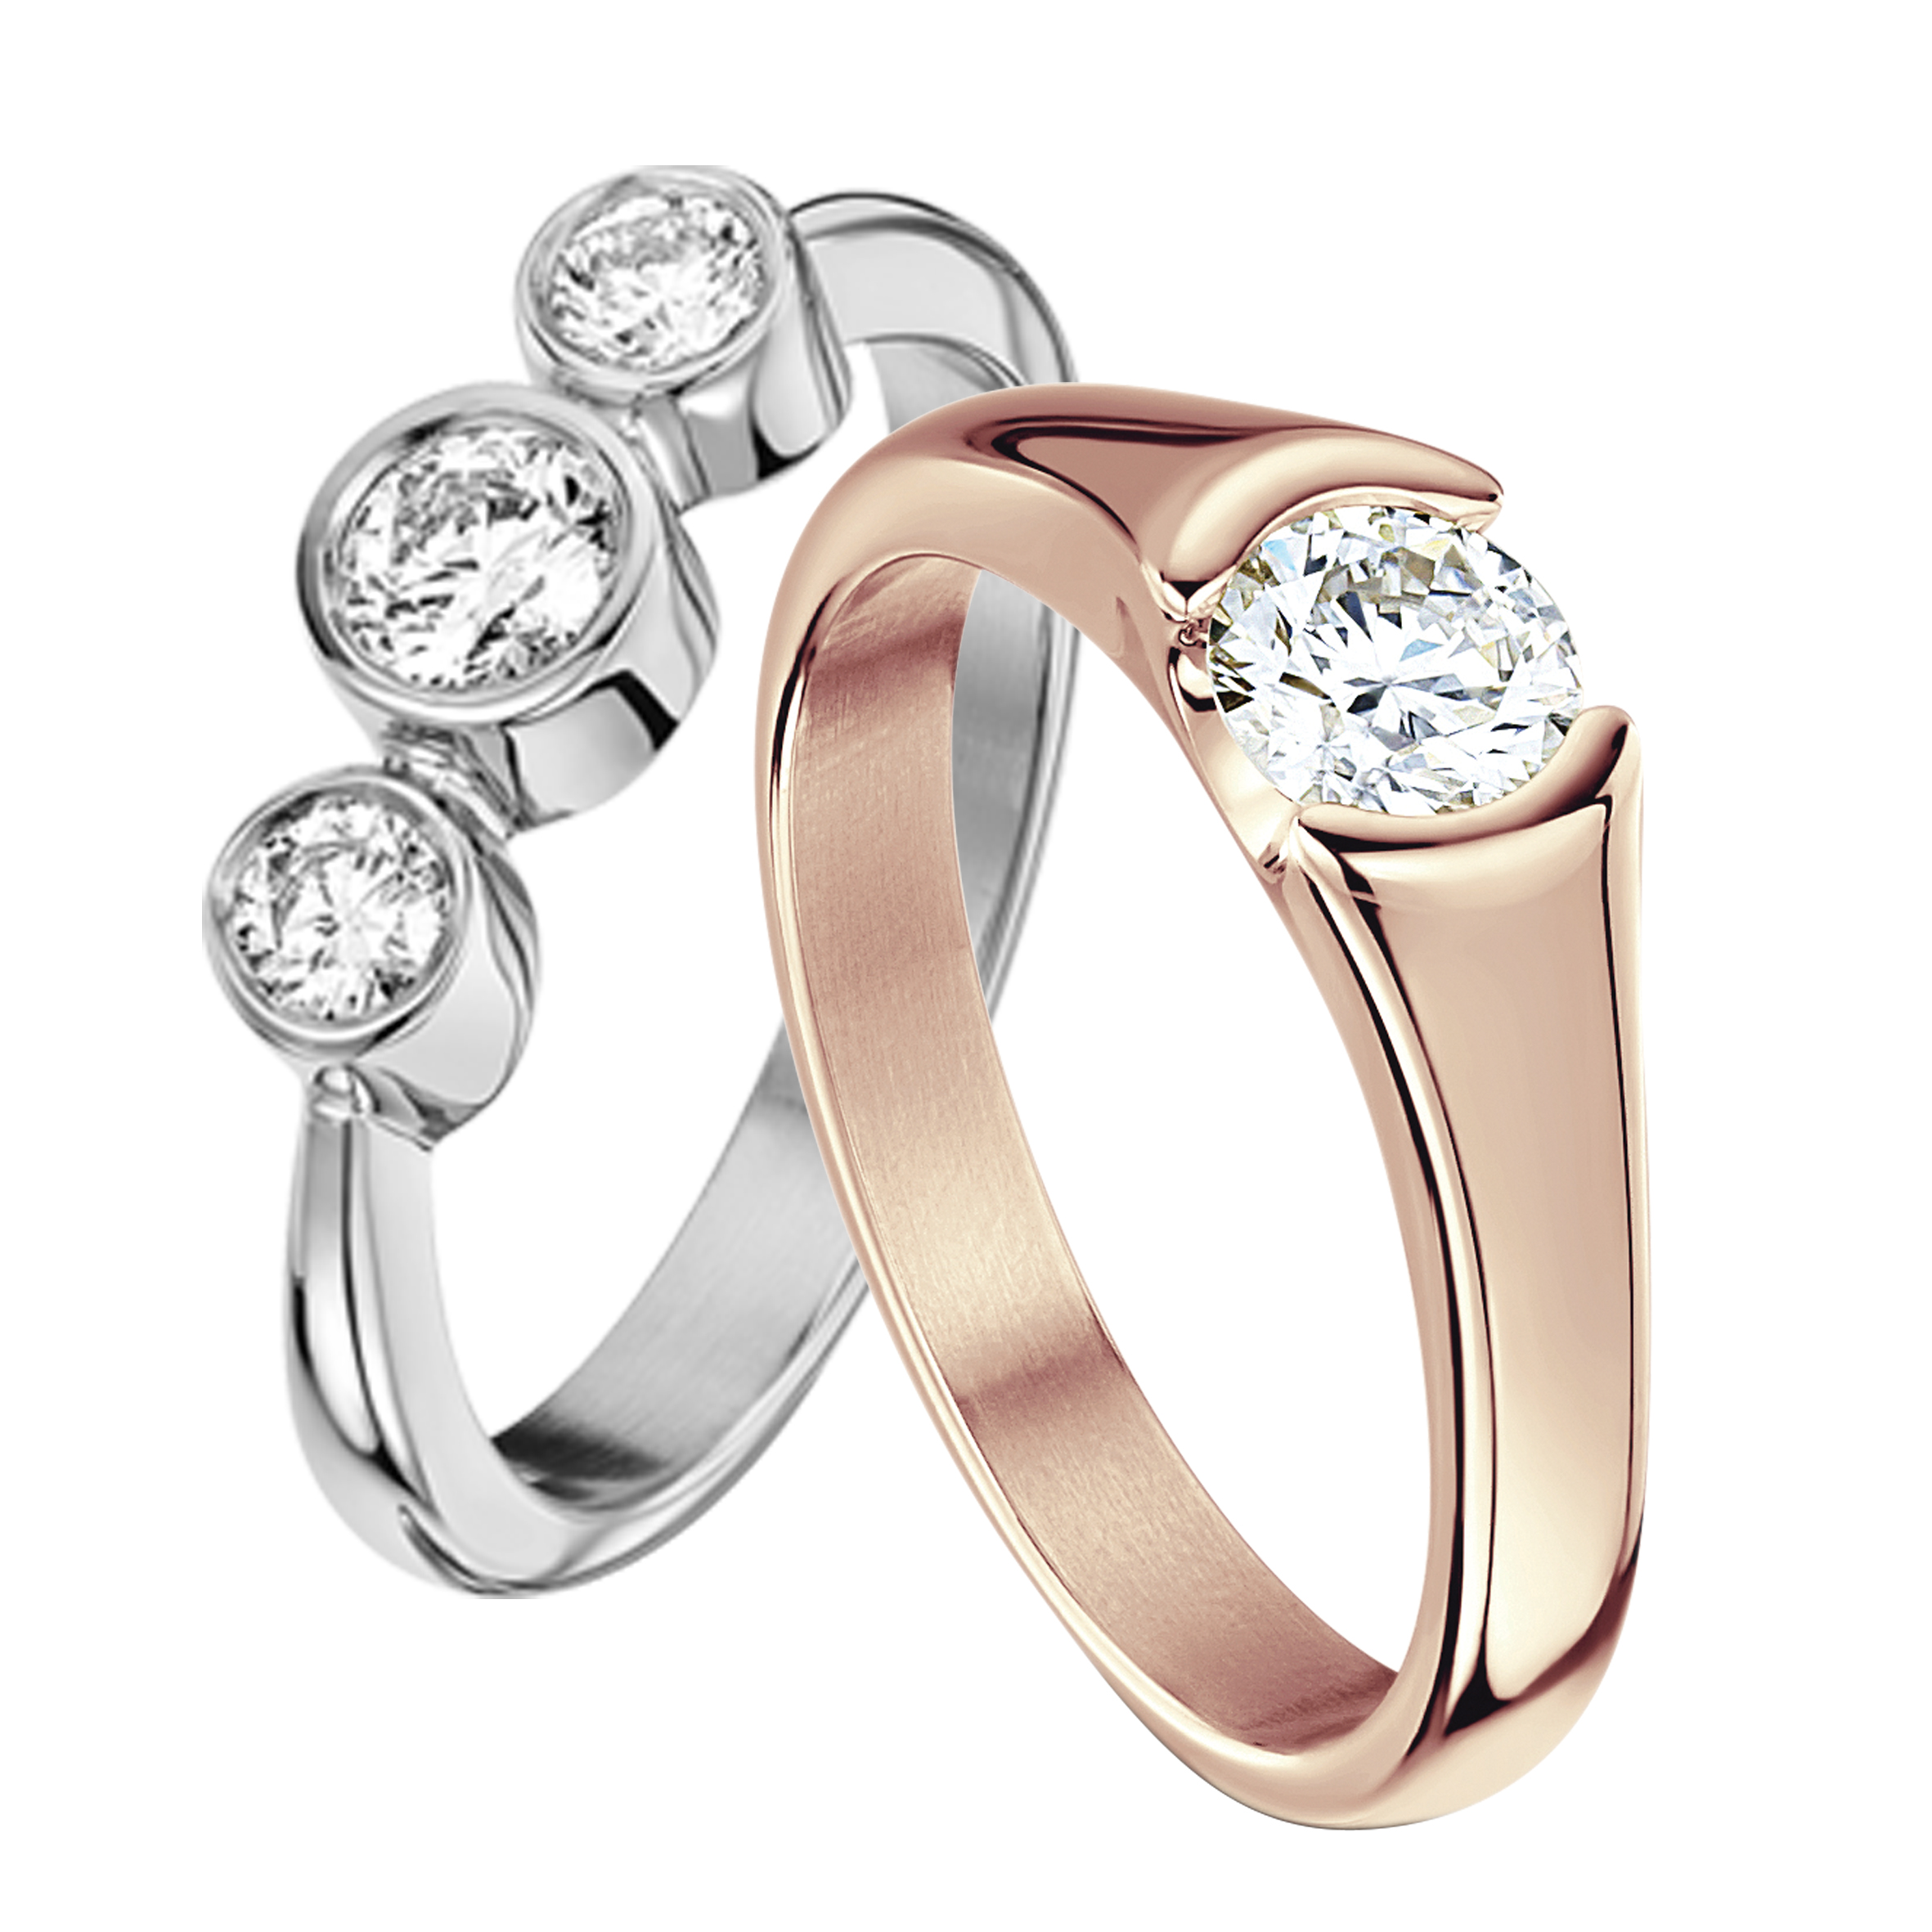 wedding rings groom for and bride luxury